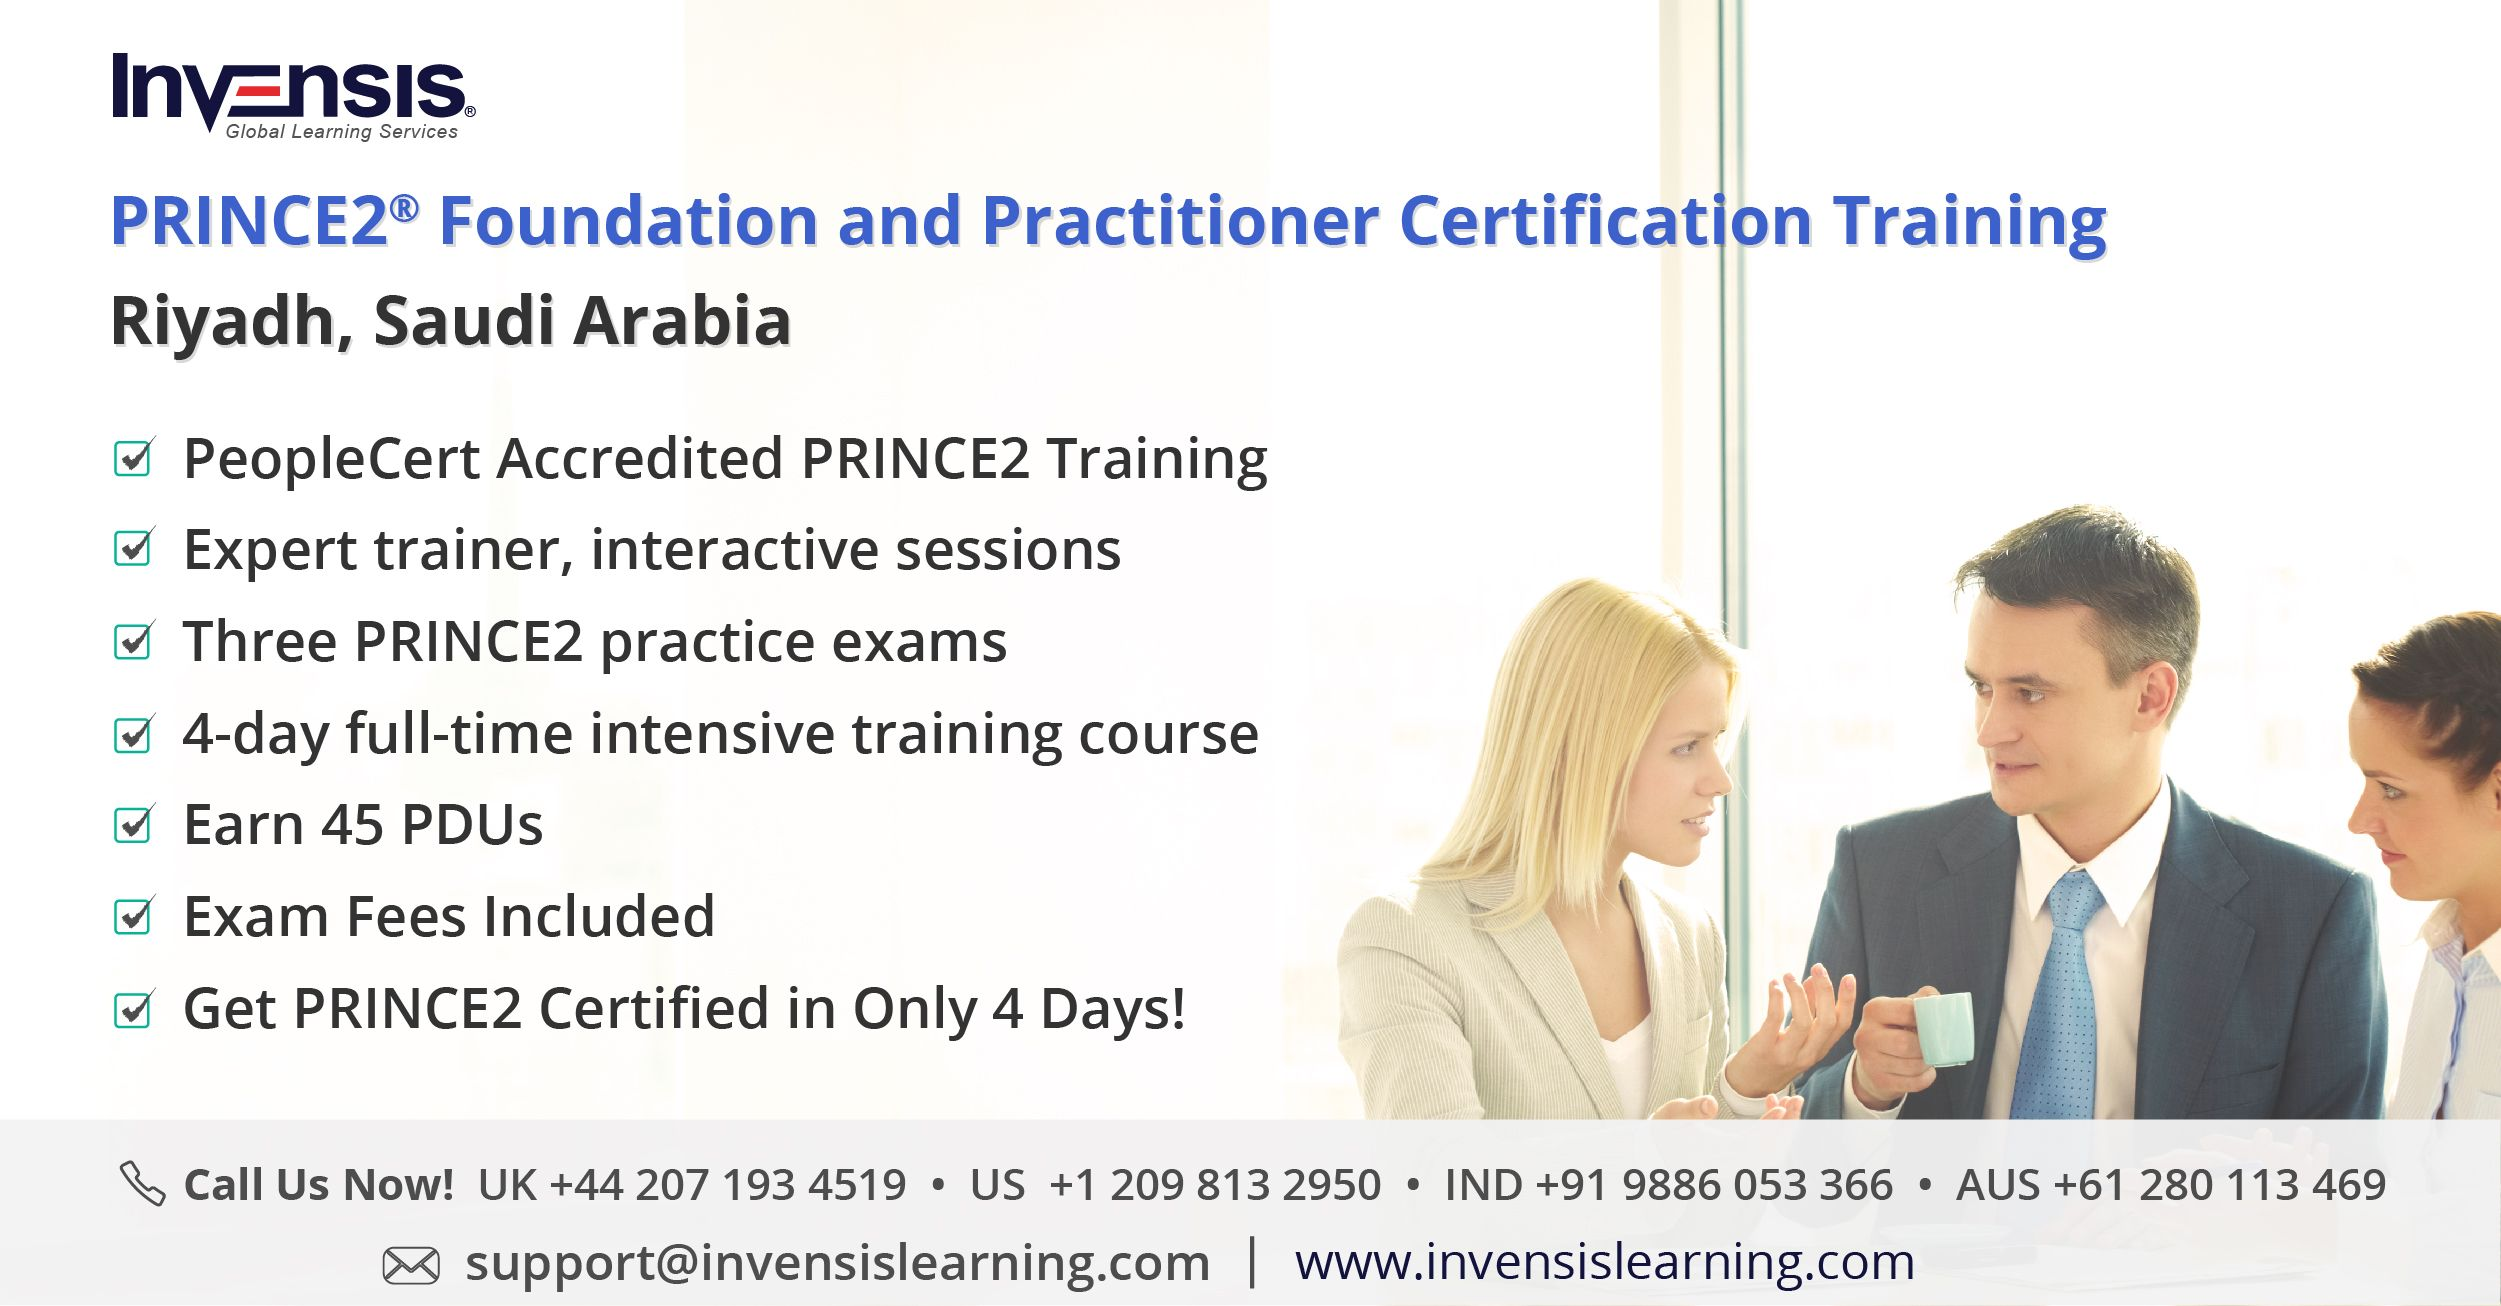 We provide training for all levels of prince2 courses like prince2 we provide training for all levels of prince2 courses like prince2 foundation prince2 practitioner in pune mumbai bangalore and chennai get t 1betcityfo Image collections